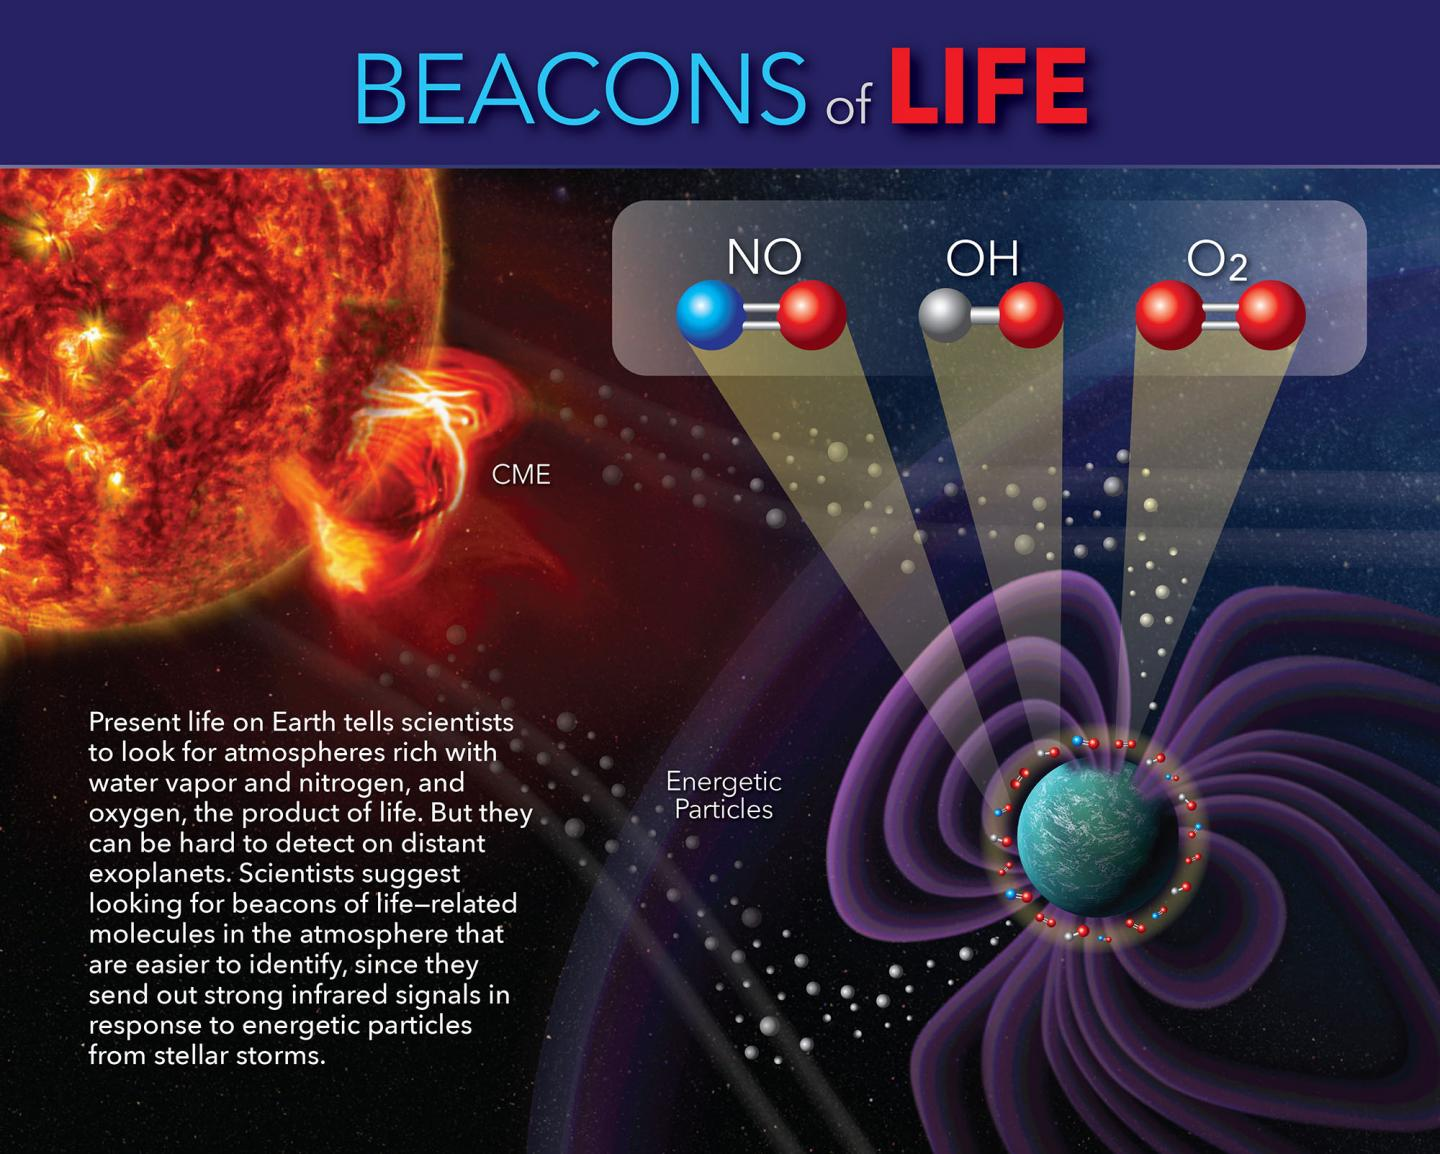 'Beacons of Life' Infographic